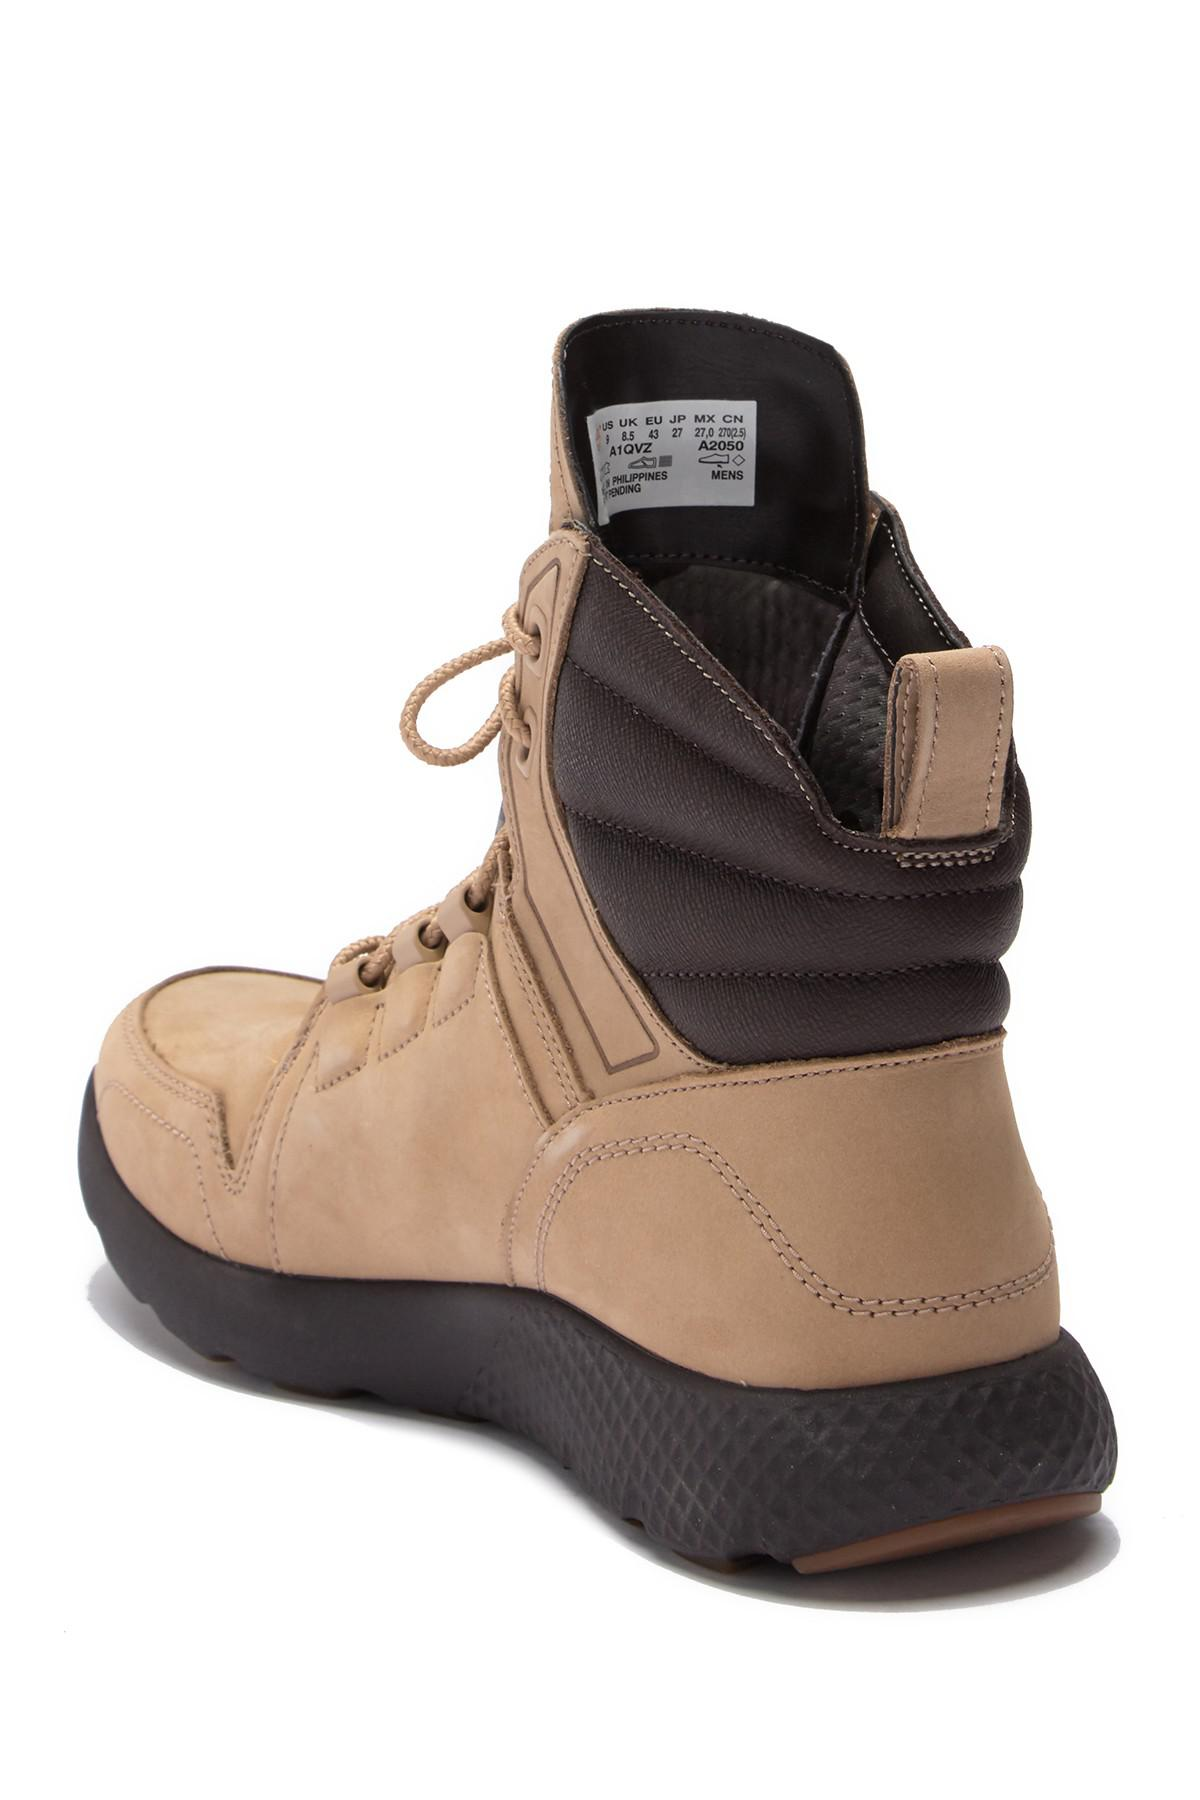 d58c773a Timberland Flyroam Leather Hi-top Sneaker Boot in Brown for Men - Lyst